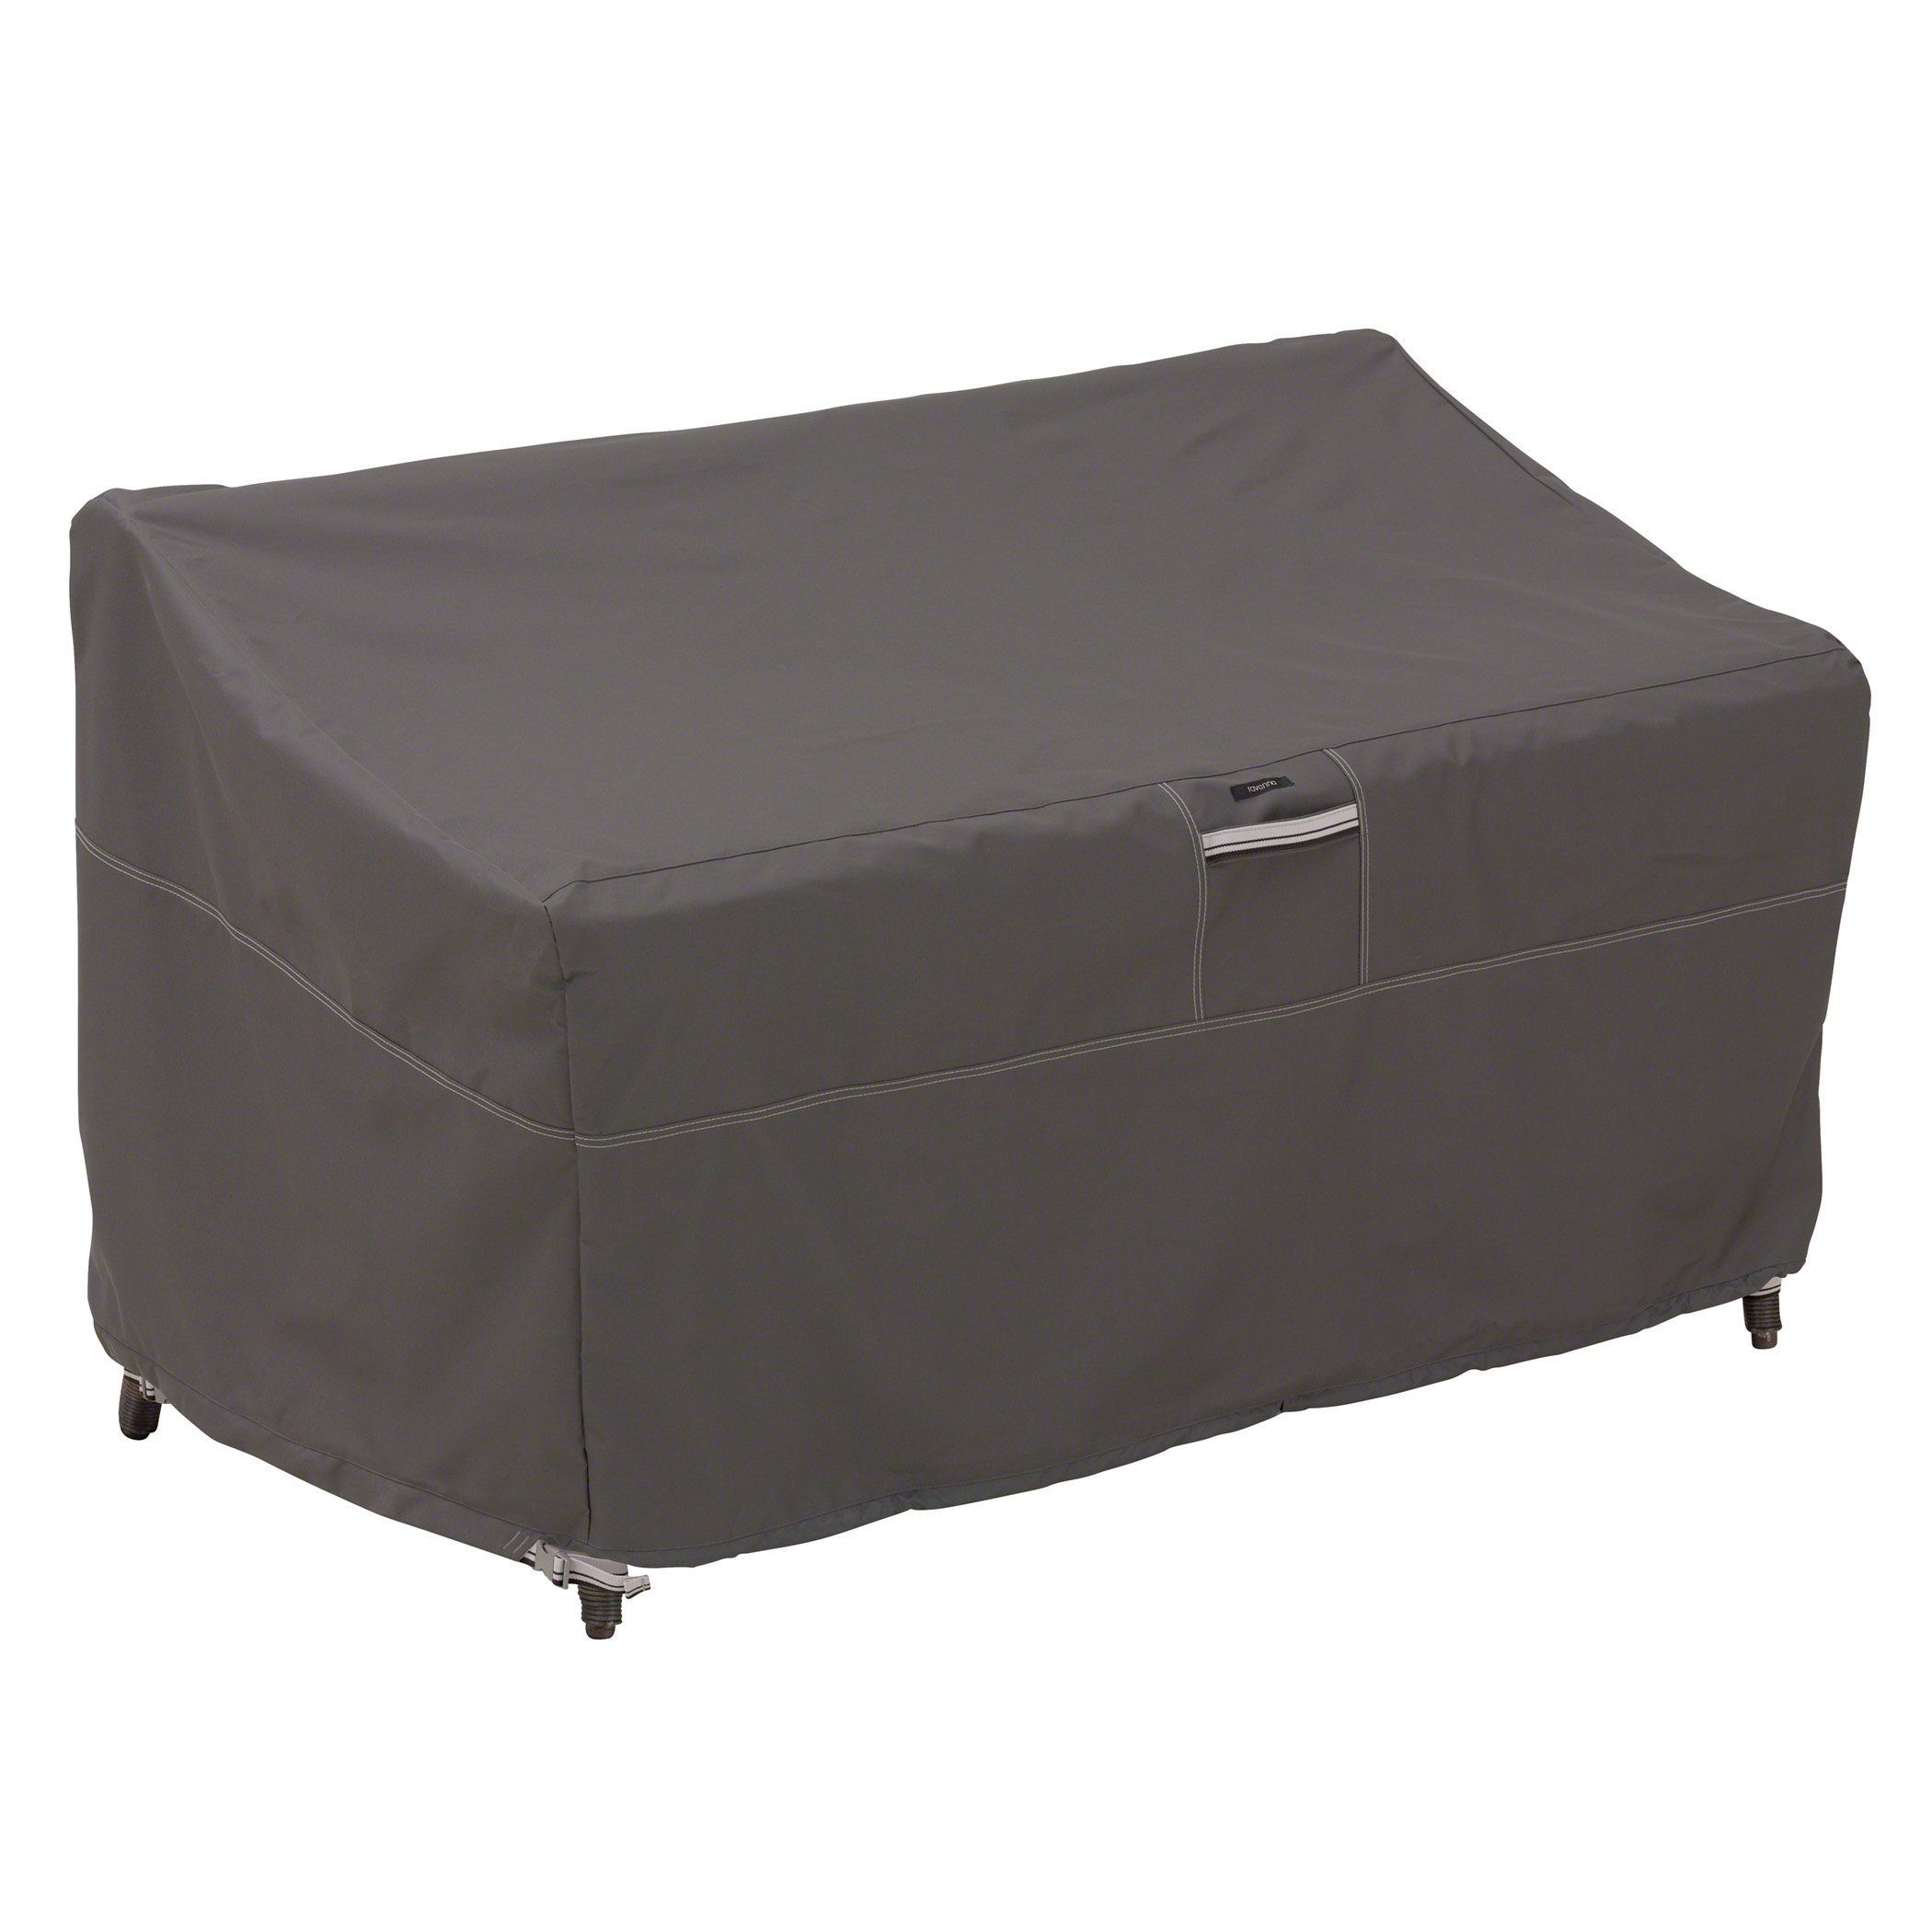 Classic Accessories Ravenna Cover For Hampton Bay Spring Haven All-Weather Patio Loveseats by Classic Accessories